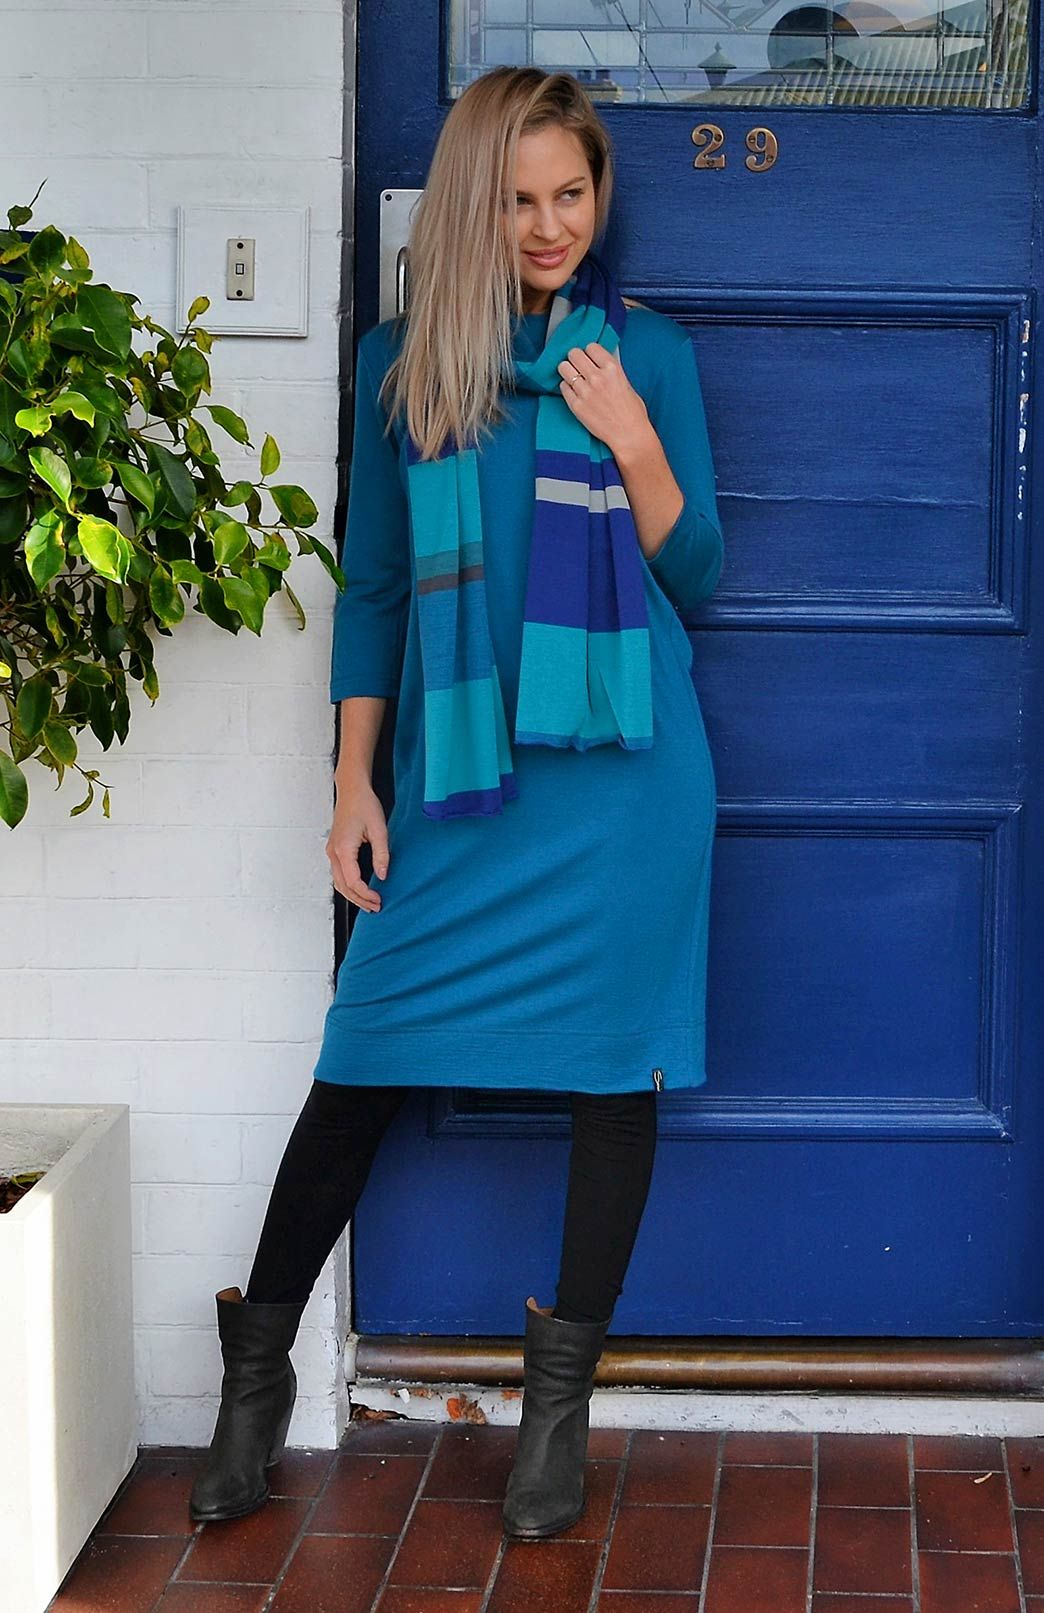 Audrey Shift Dress - Women's Teal Merino Wool Classic Knee Length Dress - Smitten Merino Tasmania Australia